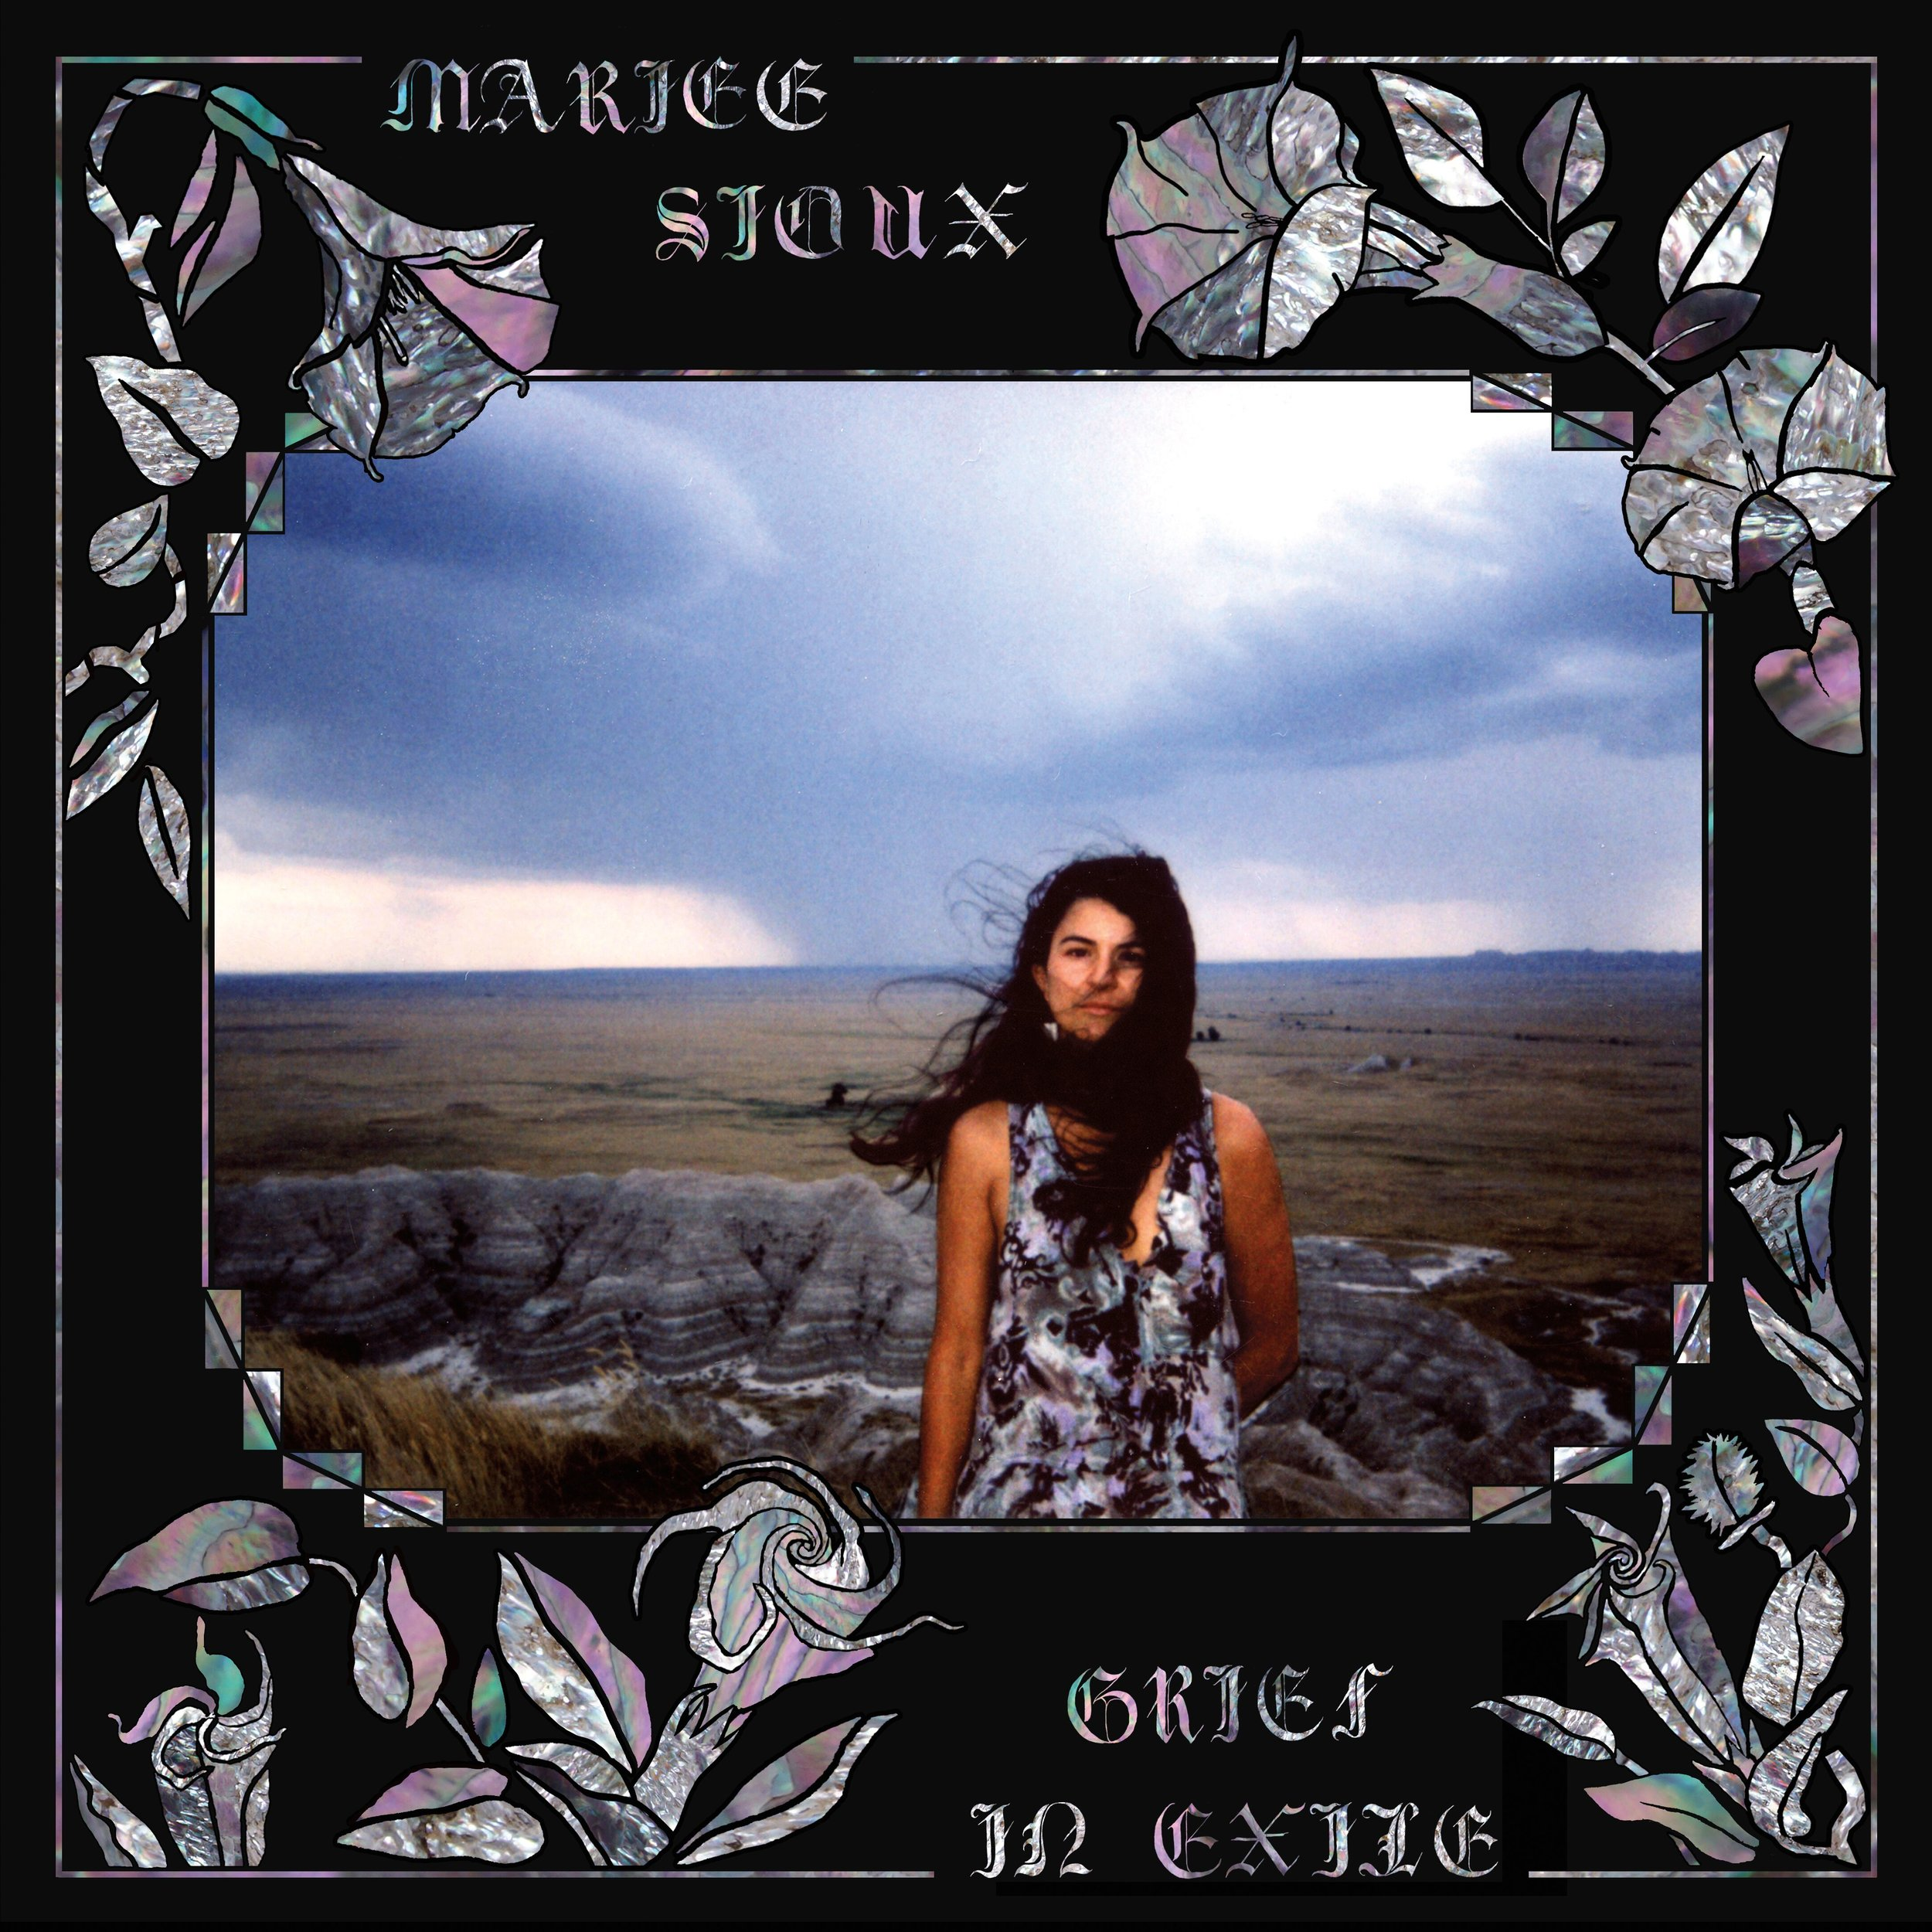 Mariee Sioux cover final.jpeg